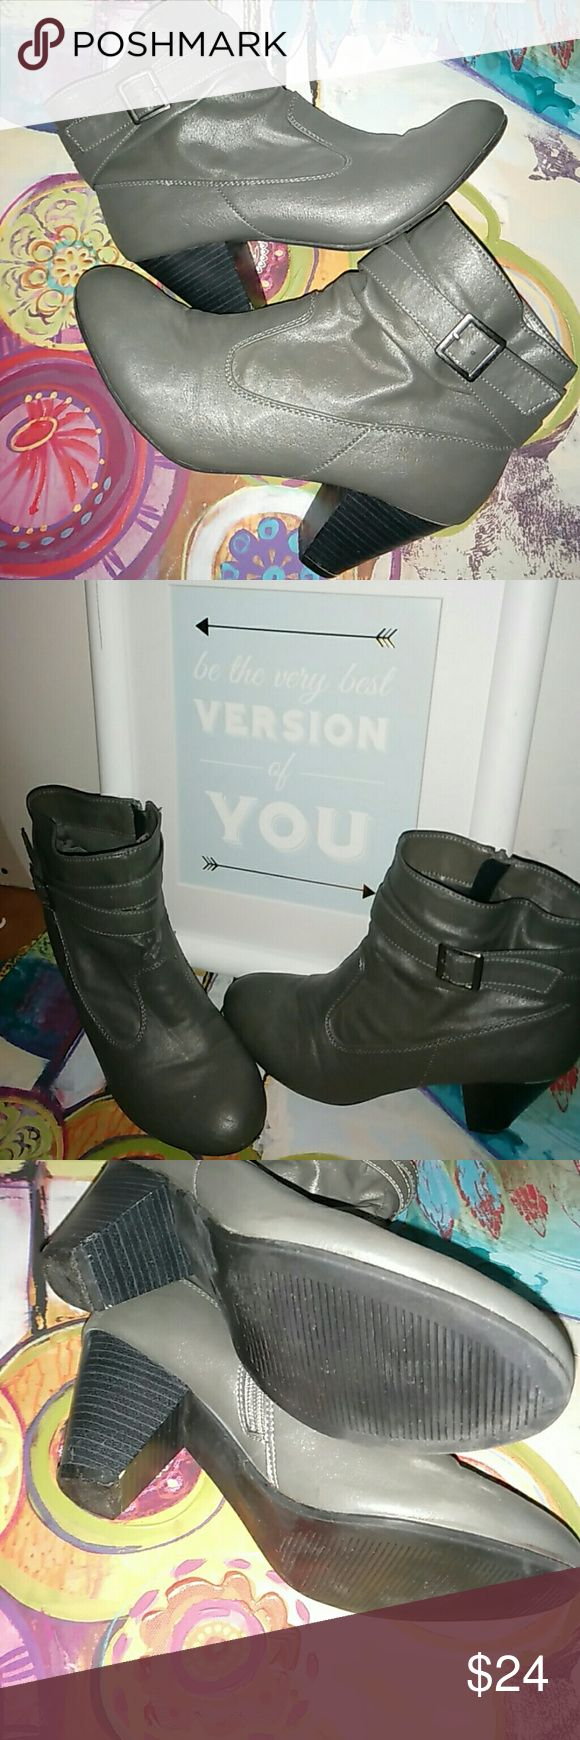 "Grey Cone Heel Bongo Booties /9 Women's Bongo Brand Booties in a charcoal grey color in impeccable used condition!!  2"" cone heel. All man made materials. Zip up style inside ankle. Wrap around straps and buckle for extra detail and a fab fashion statement!! Great looking pair of booties and great for any season!! BONGO Shoes Ankle Boots & Booties"